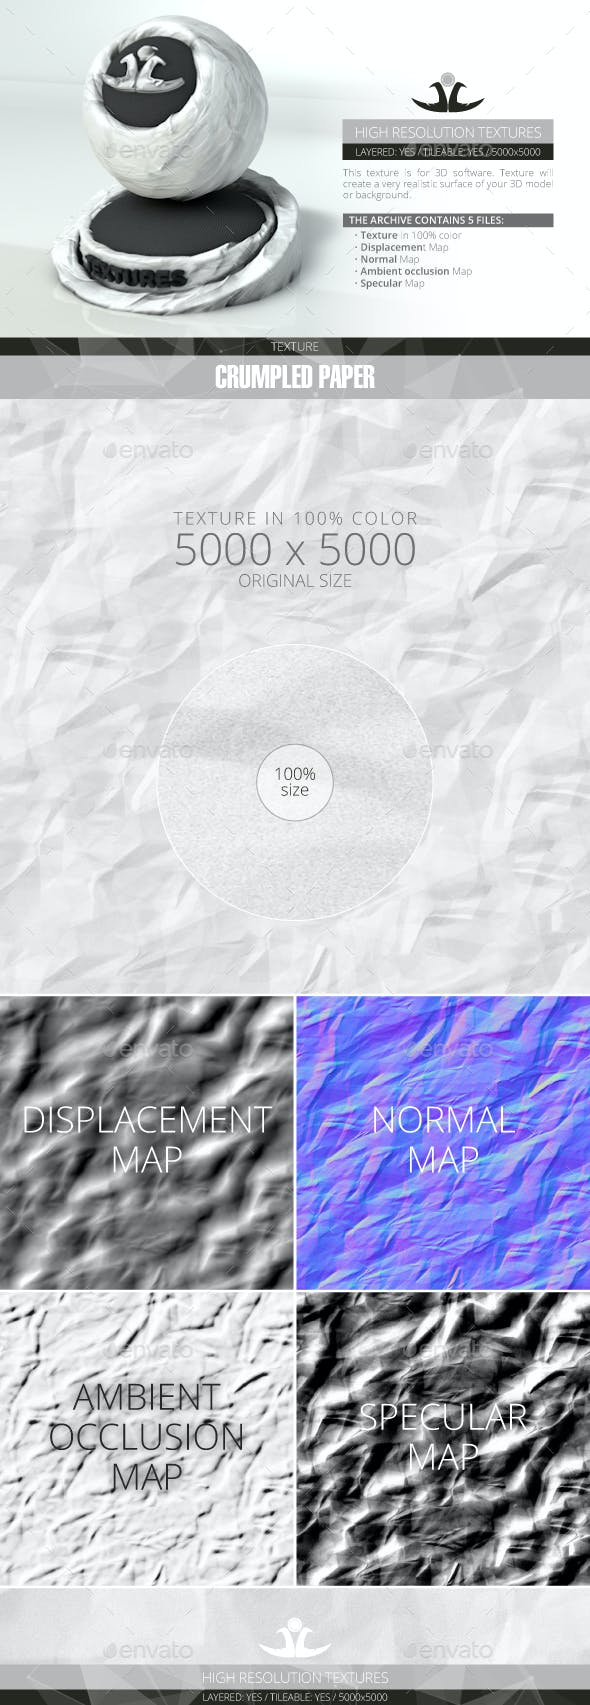 Crumpled Paper 2 - 3DOcean Item for Sale